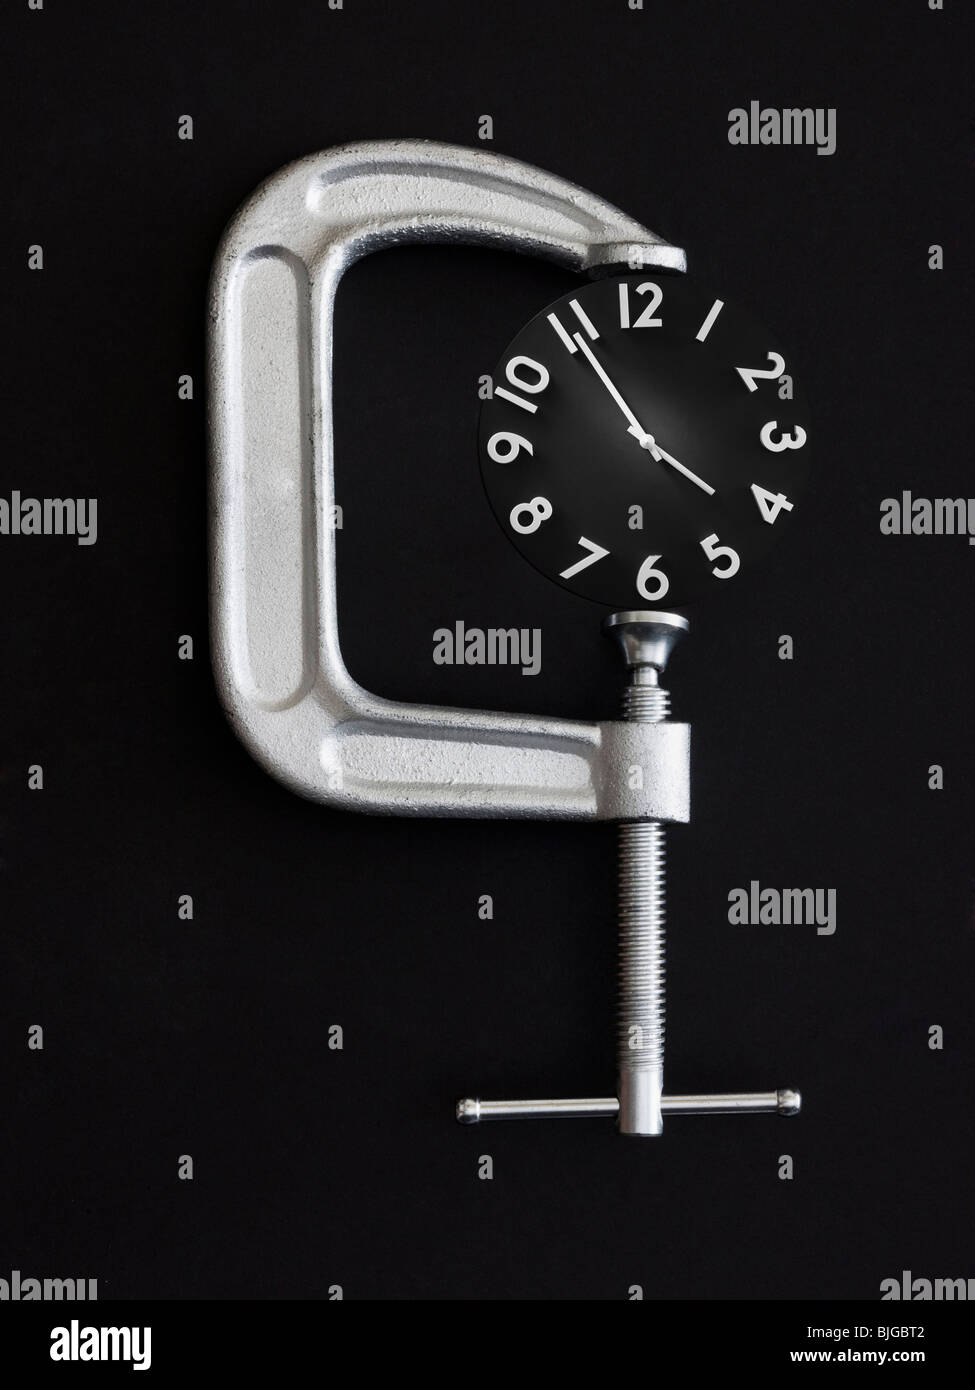 clock in a clamp - Stock Image